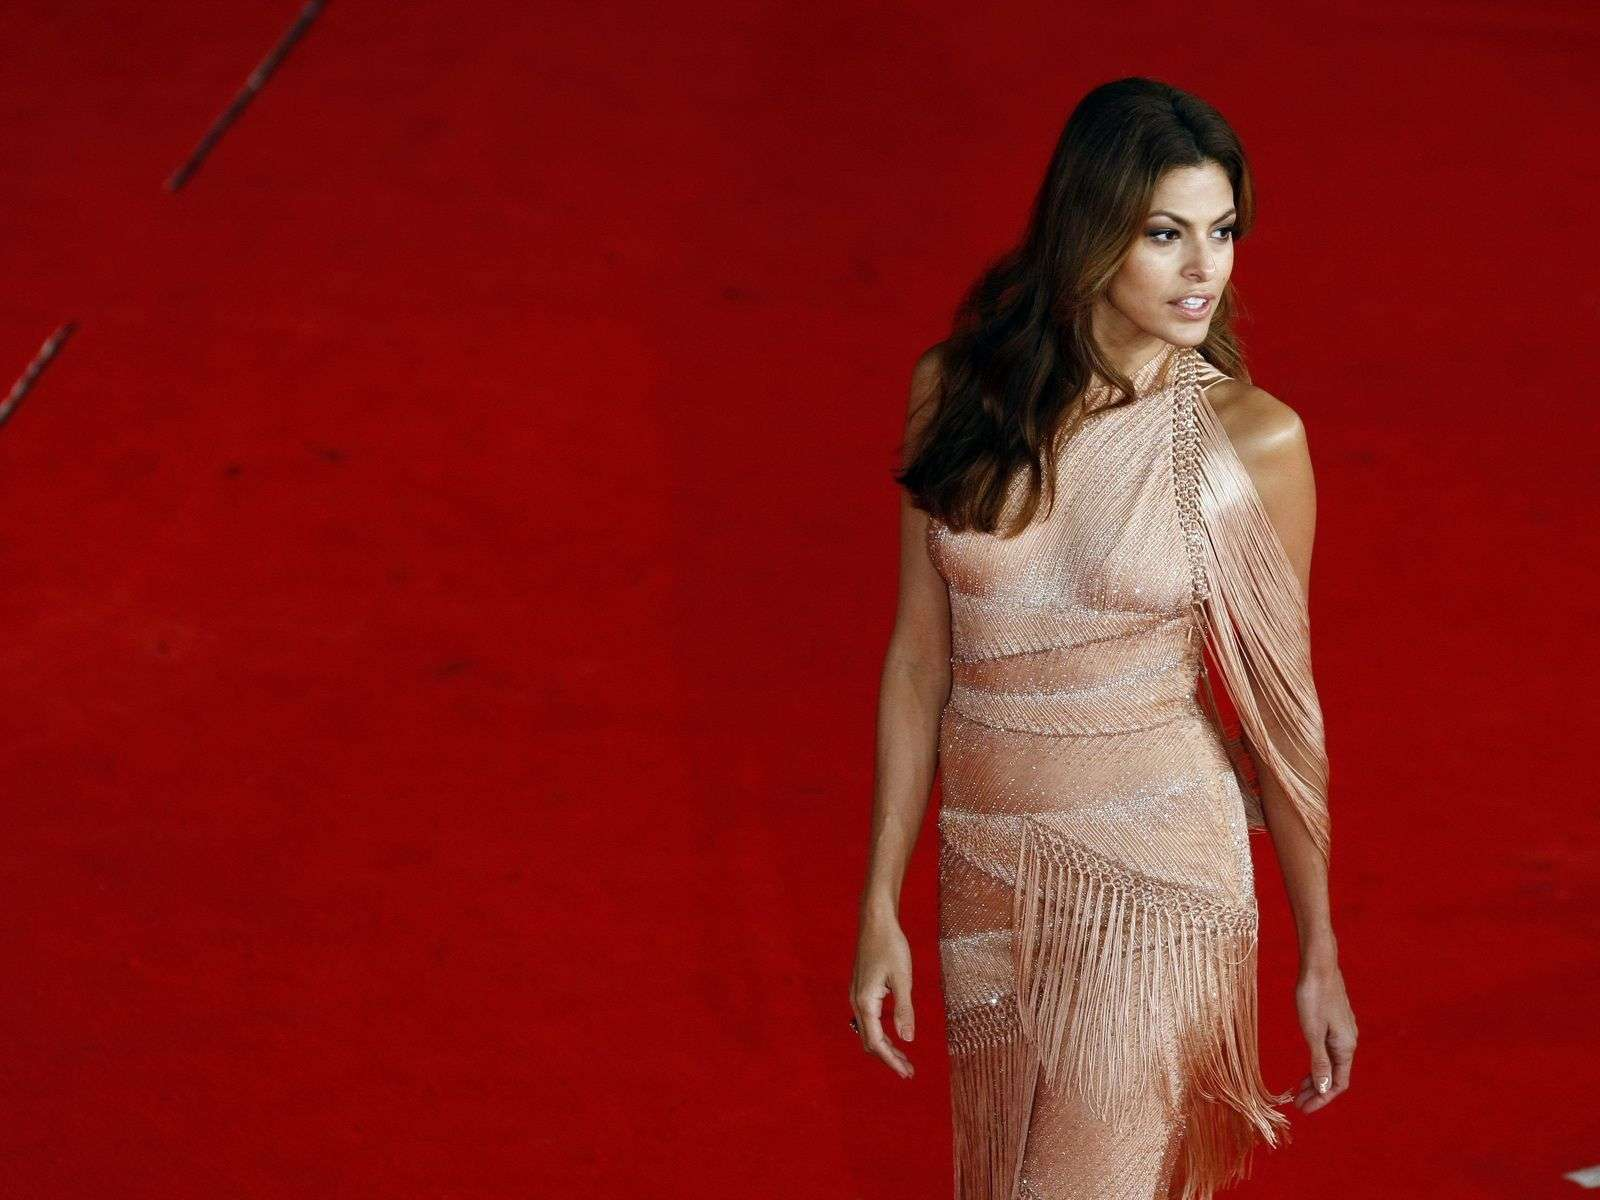 Cute Fashion Girl Wallpapers Eva Mendes Red Carpet Wallpaper Wallpapers Hd Wallpapers